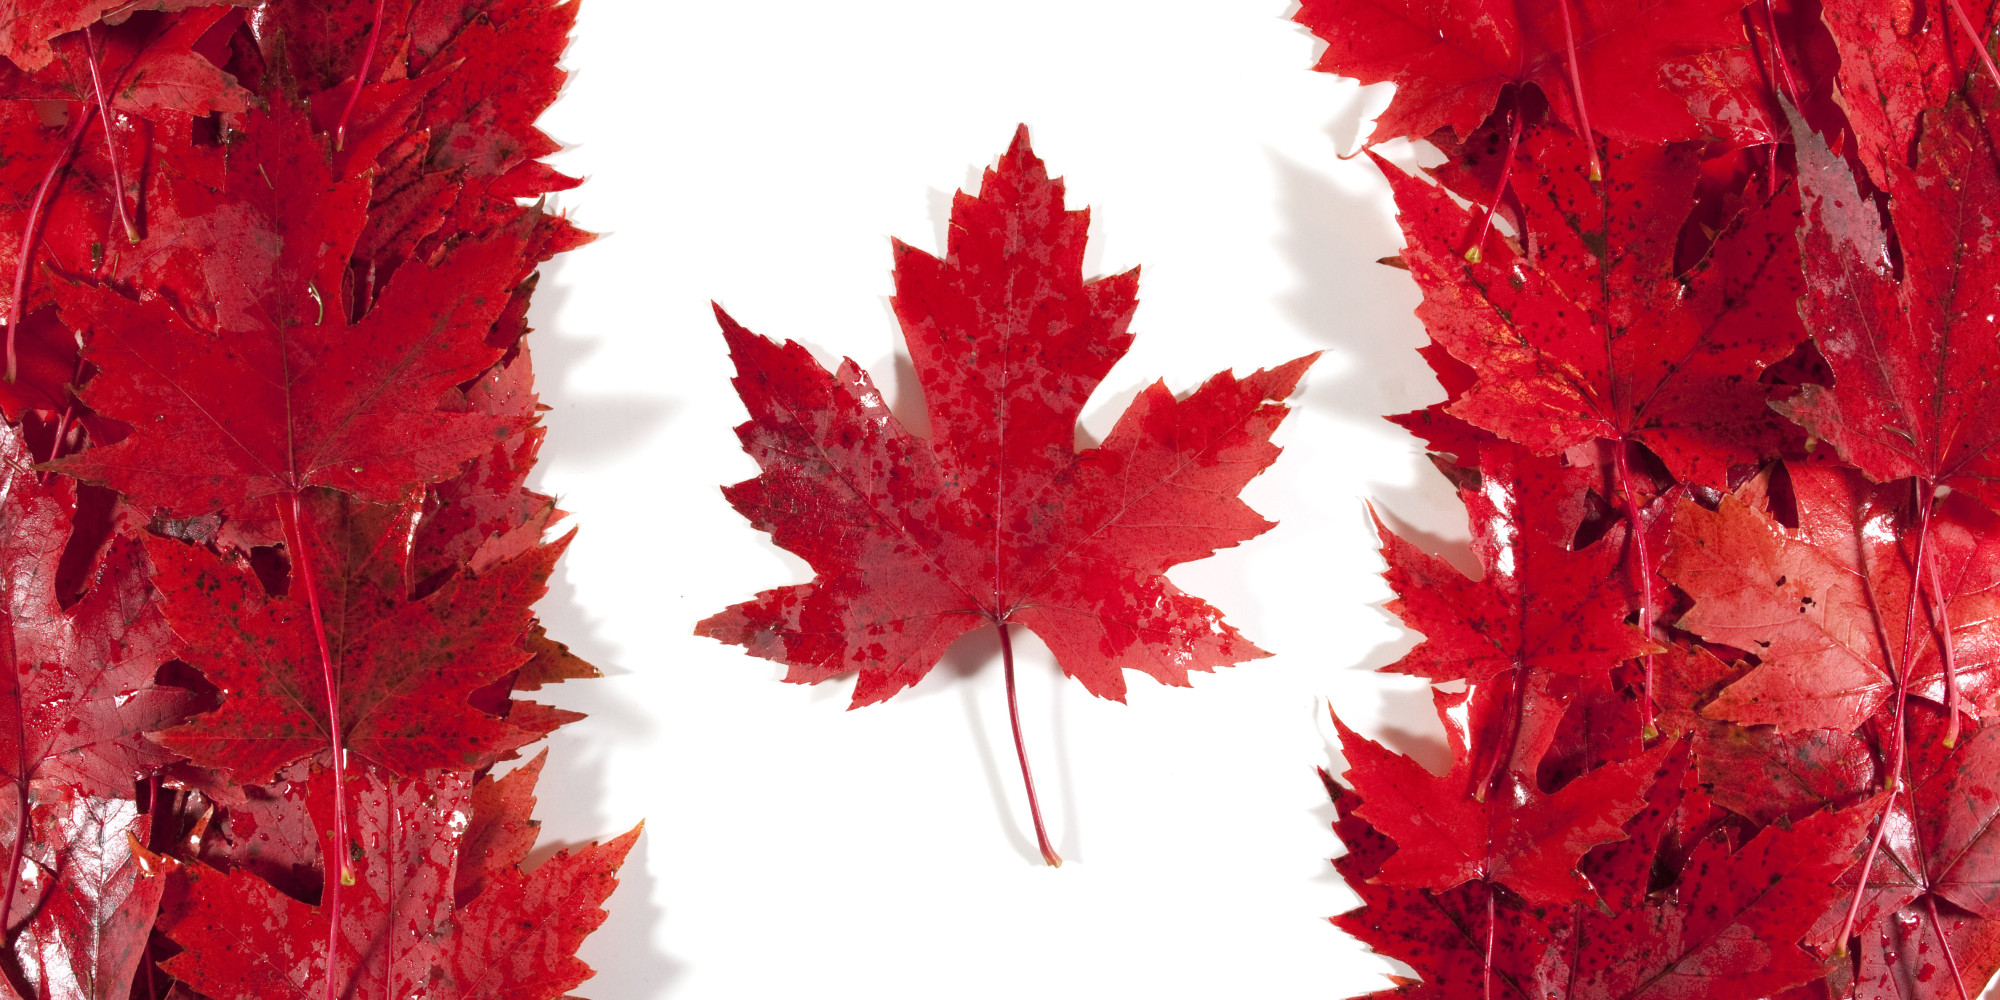 Canada Maple Leaves Frame 937.48 Kb